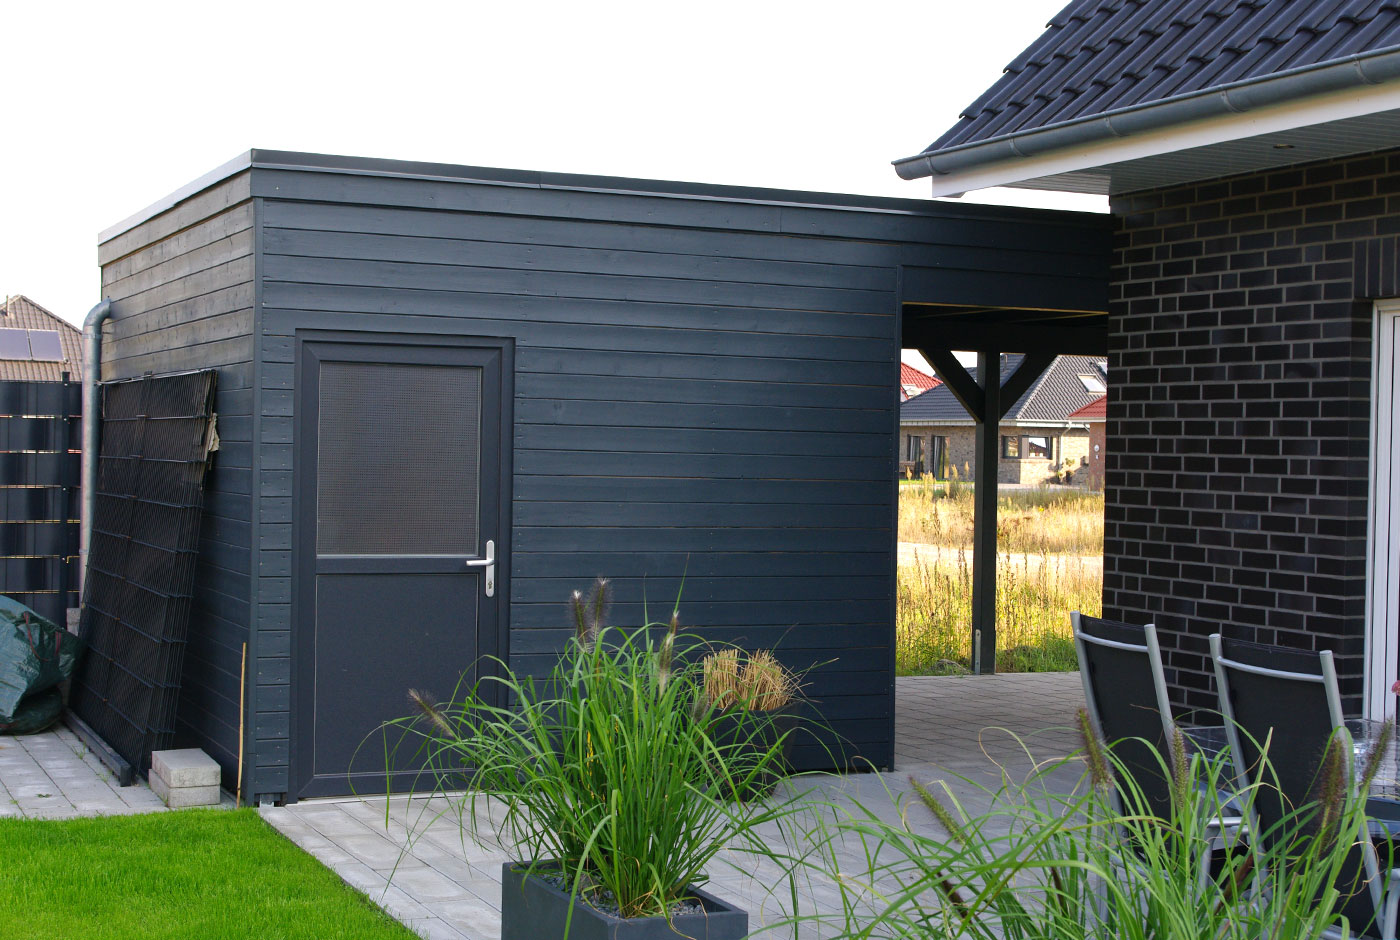 carport erweitern wenn der platz im carport zu eng wird. Black Bedroom Furniture Sets. Home Design Ideas